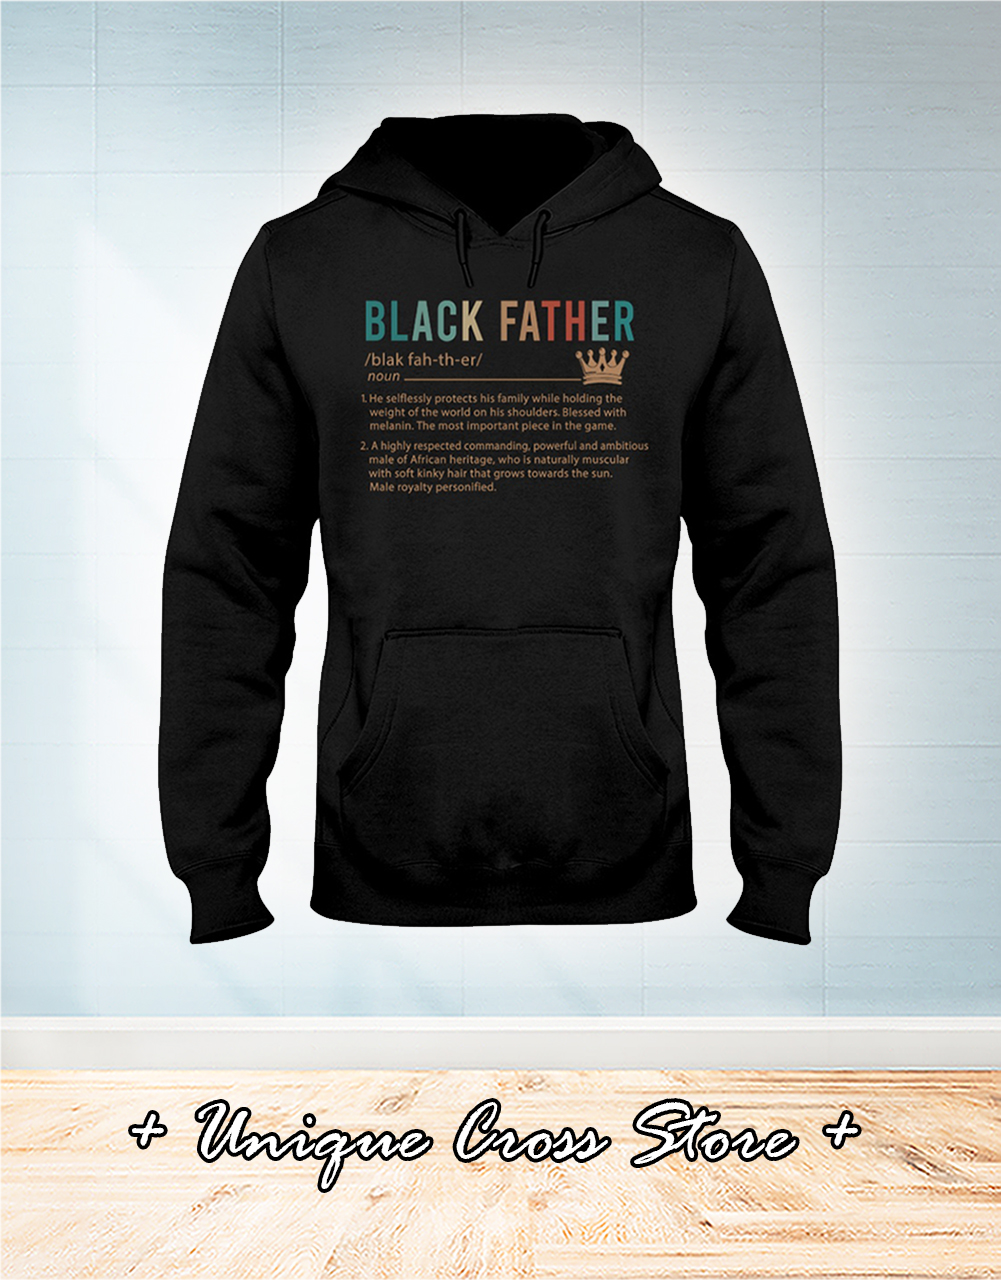 Black father definition hoodie